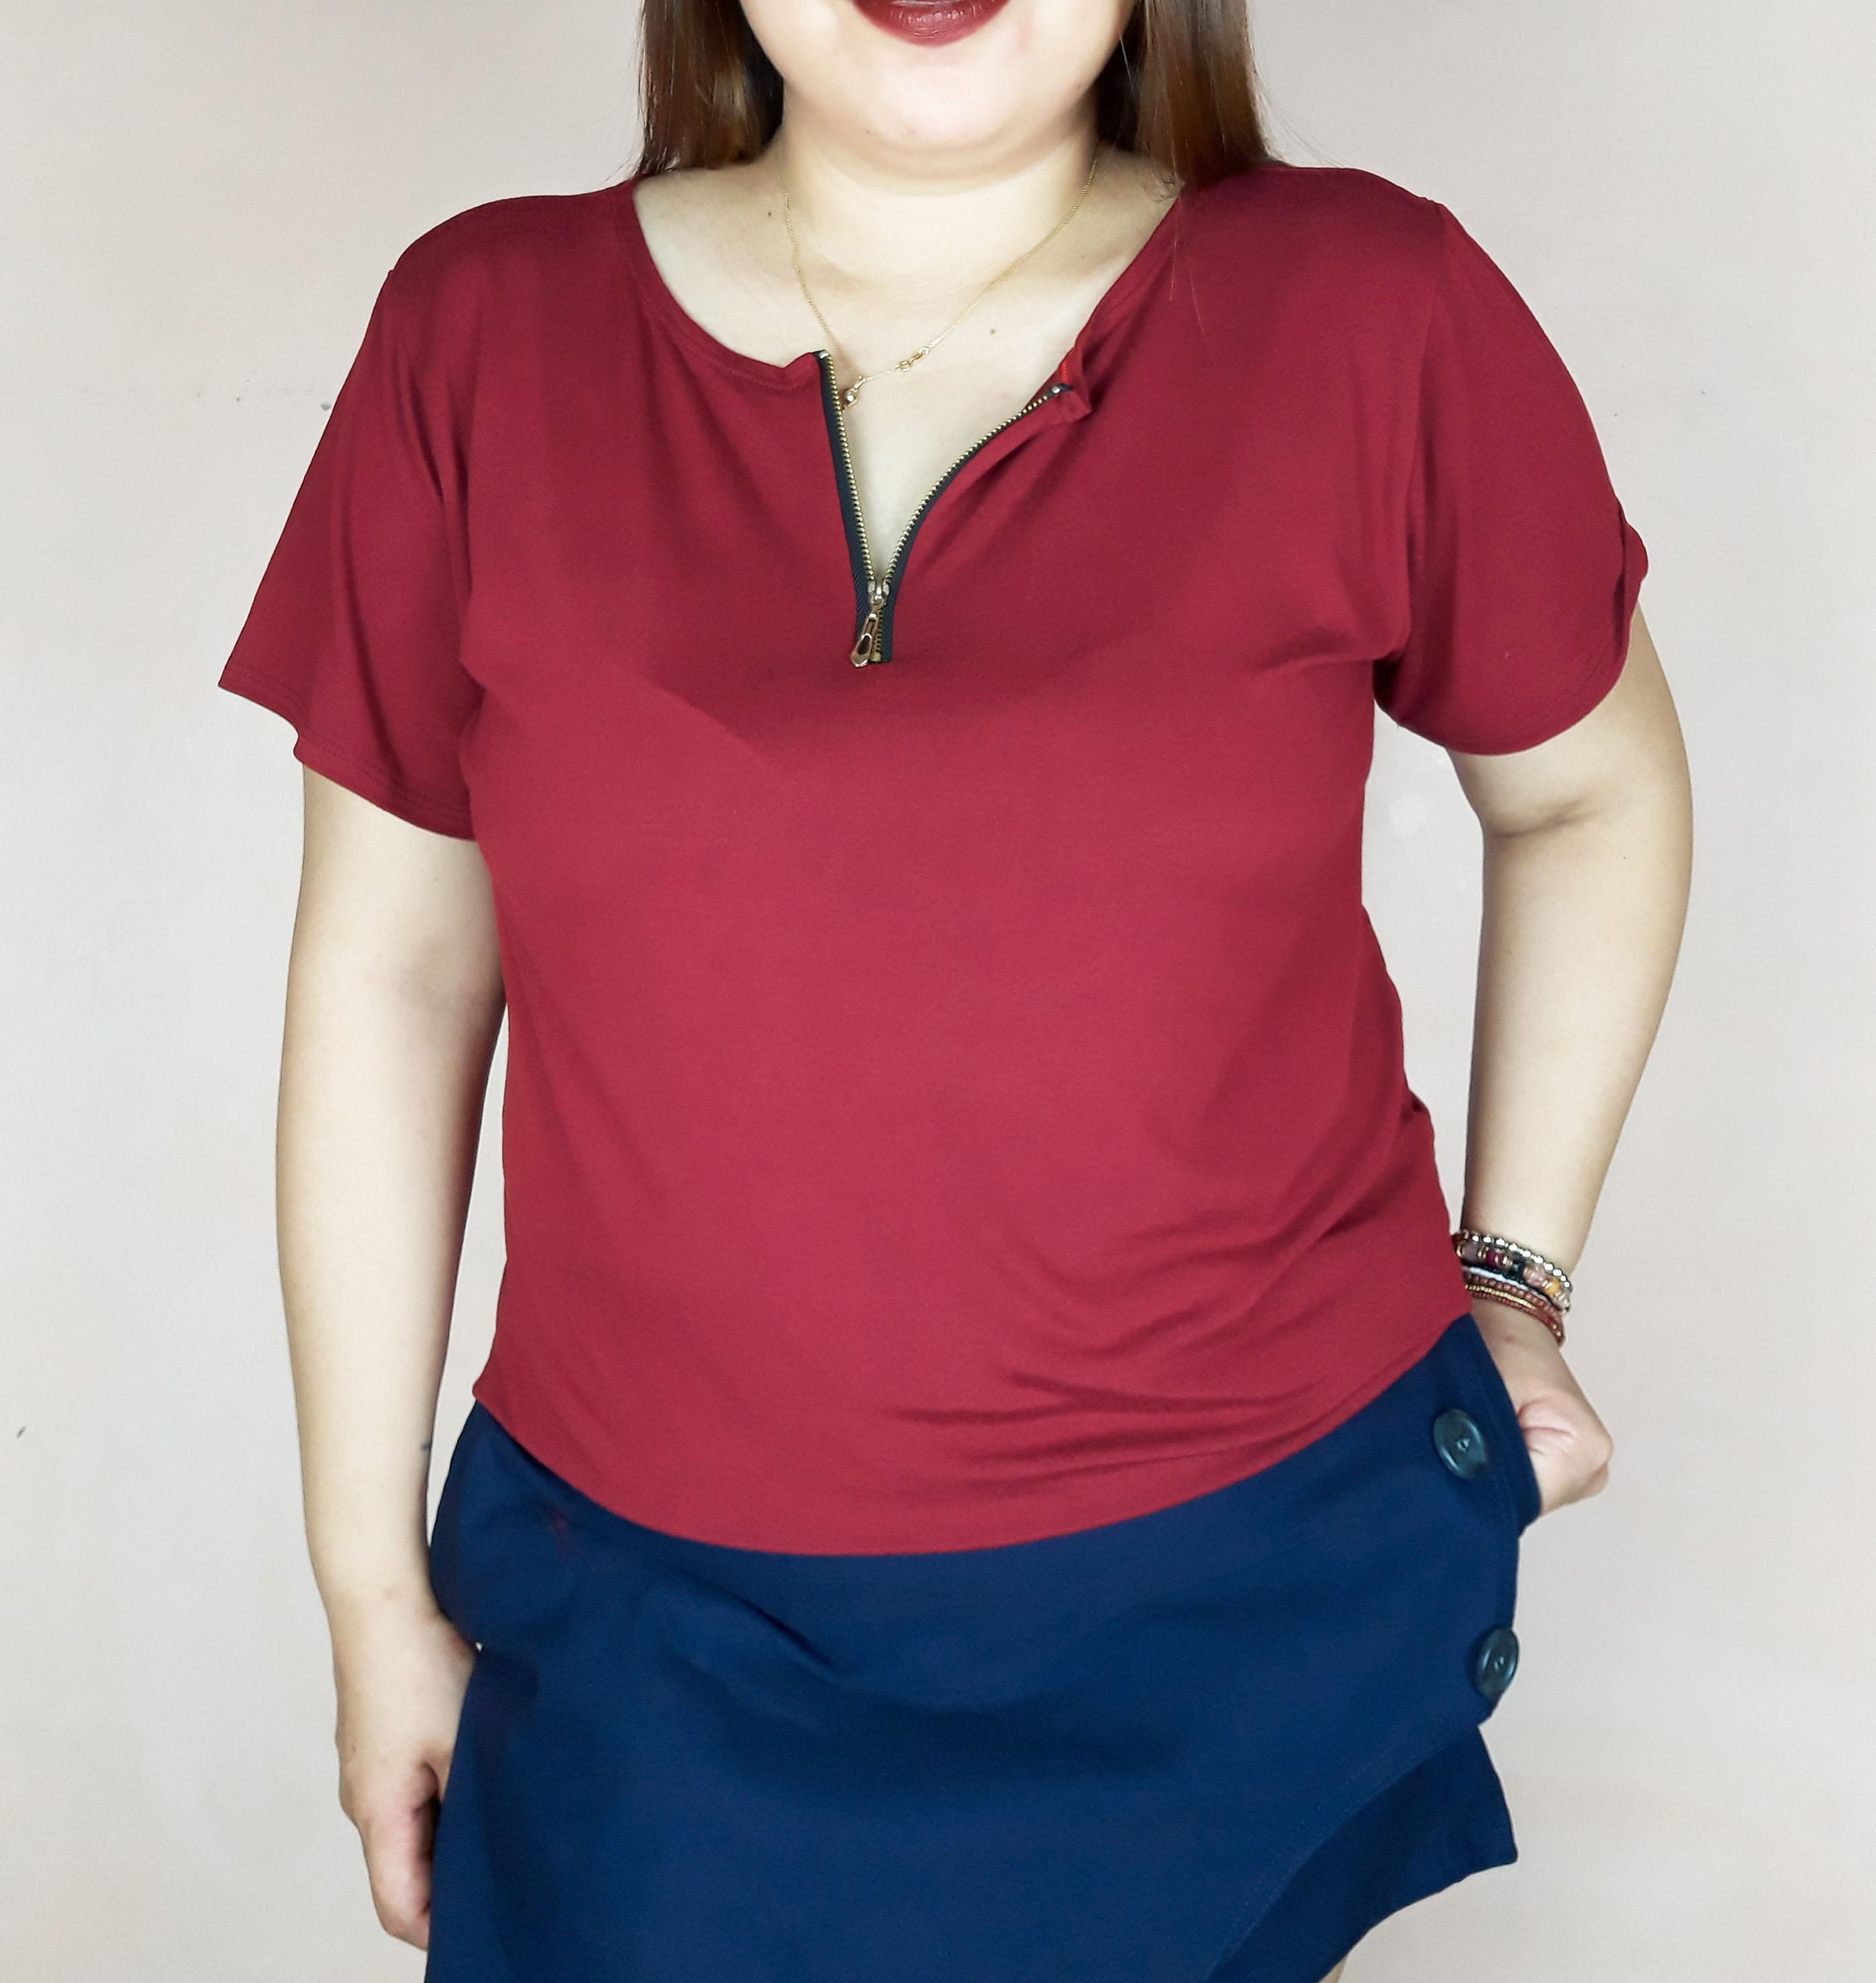 0c4b695c38fe3 Blouses for Women for sale - Fashion Blouse Online Deals & Prices in ...